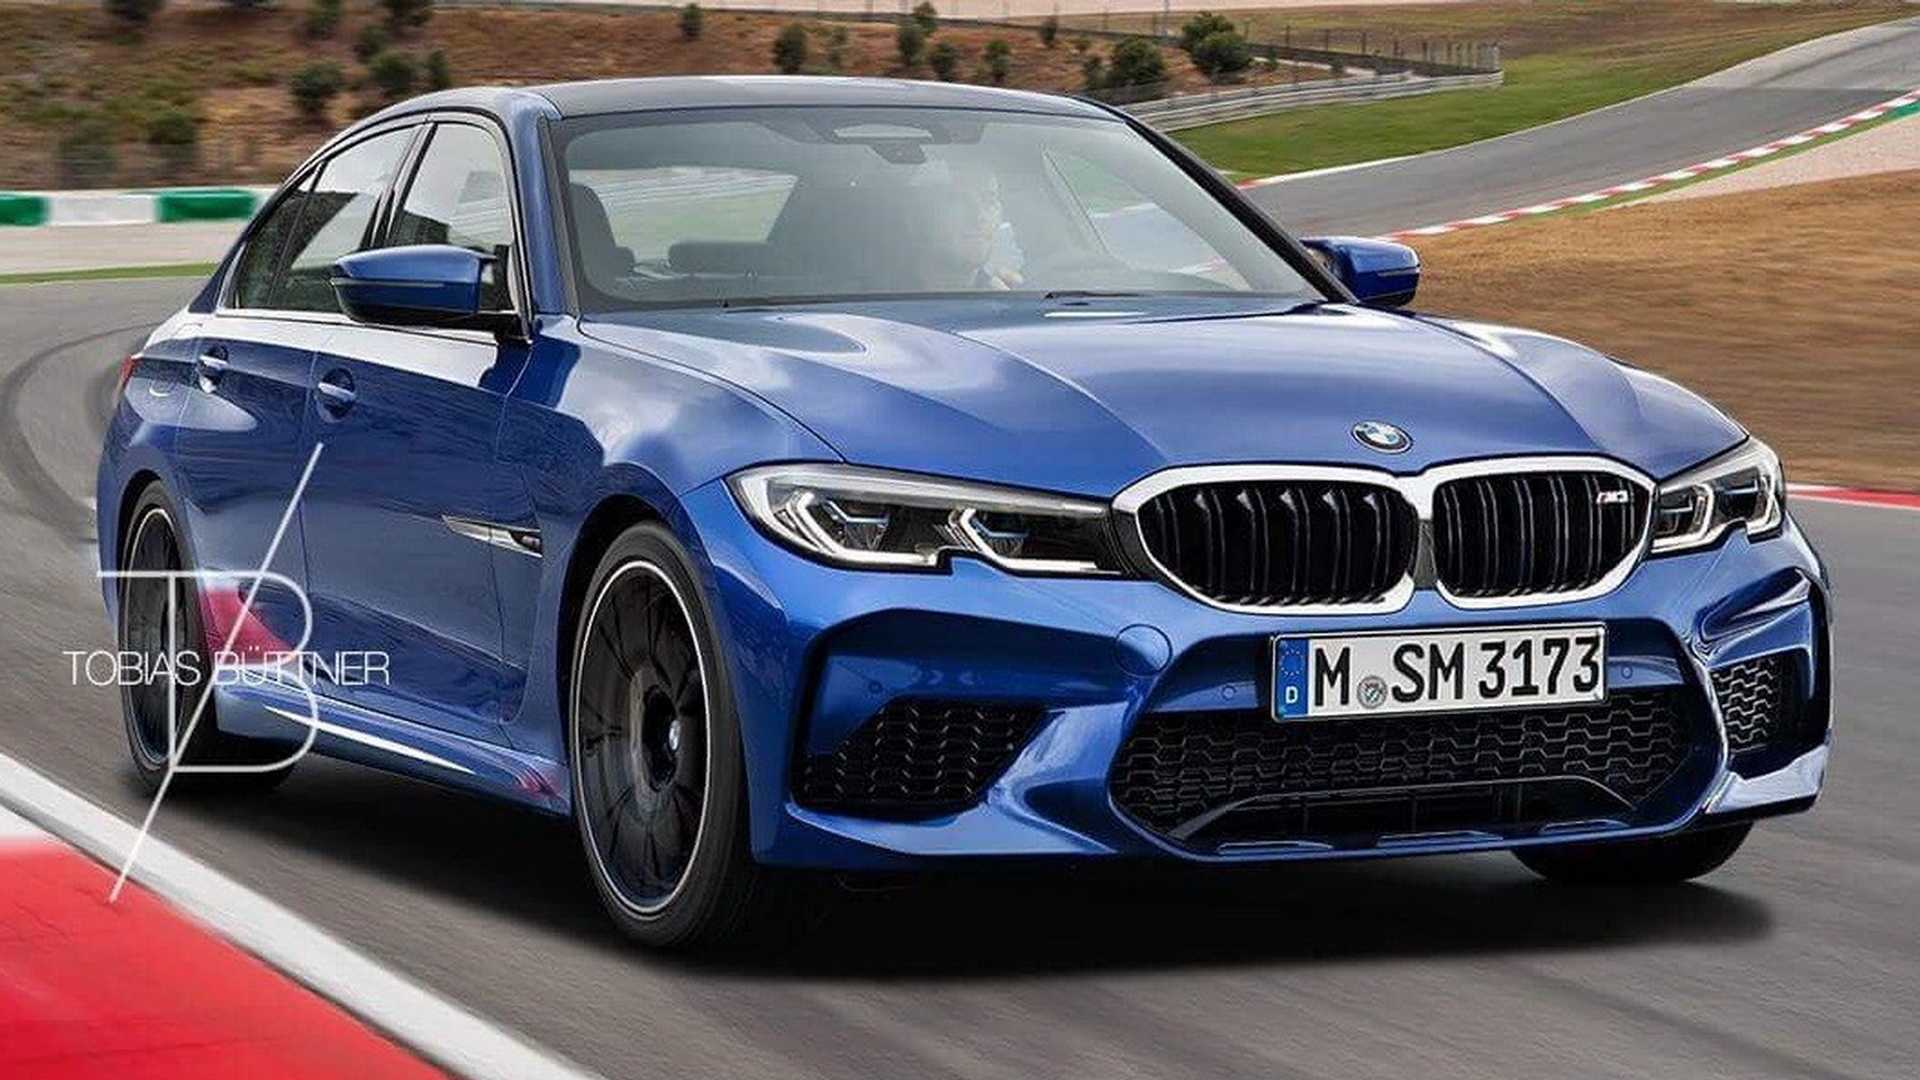 43 The Best 2020 BMW M4 Gts Price And Release Date